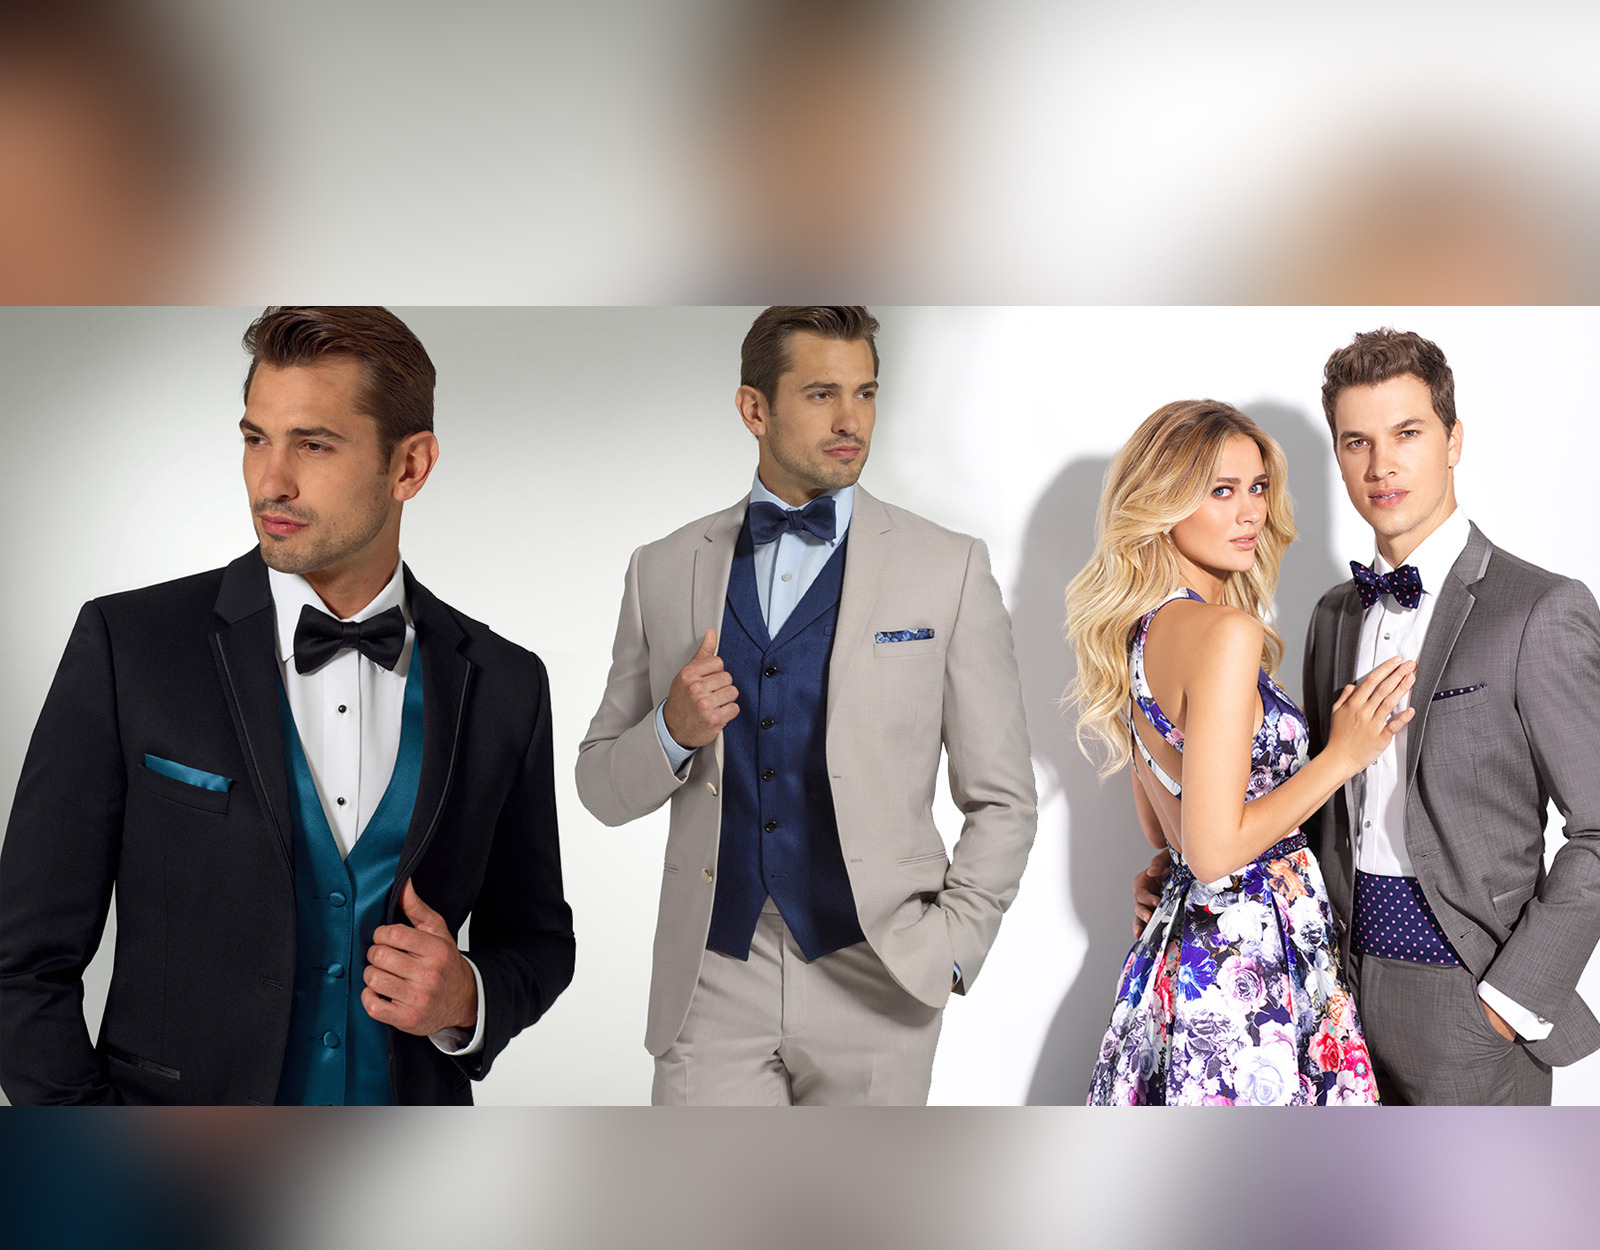 3003fa1d8c11 Country View Tuxedo and Wedding Accessories is your source for light weight  comfortable fit formal wear offering trim fit, ultra trim, semi and formal  ...